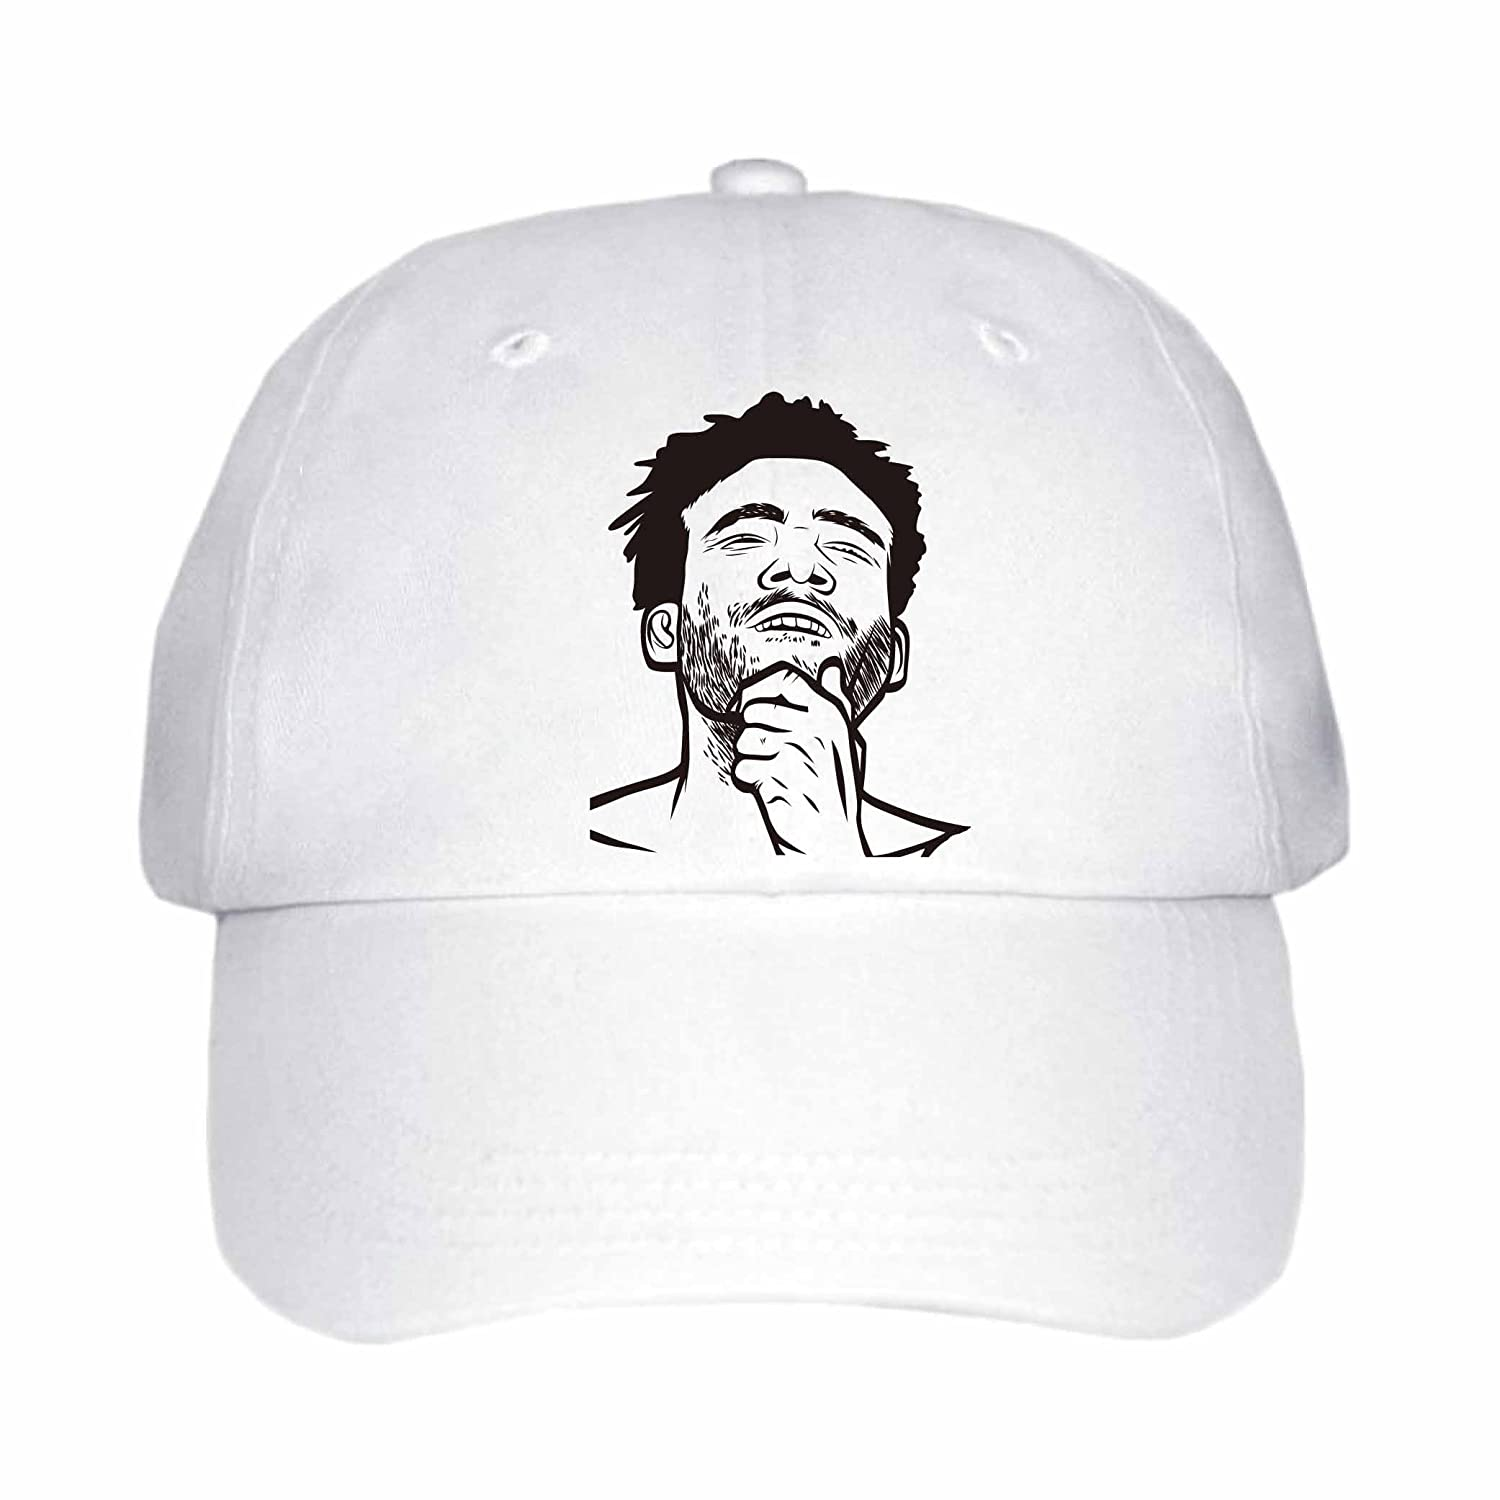 d449a6ee5ff Amazon.com  Childish Gambino Donald Glover Cap Hat (Unisex) (Khaki)   Clothing